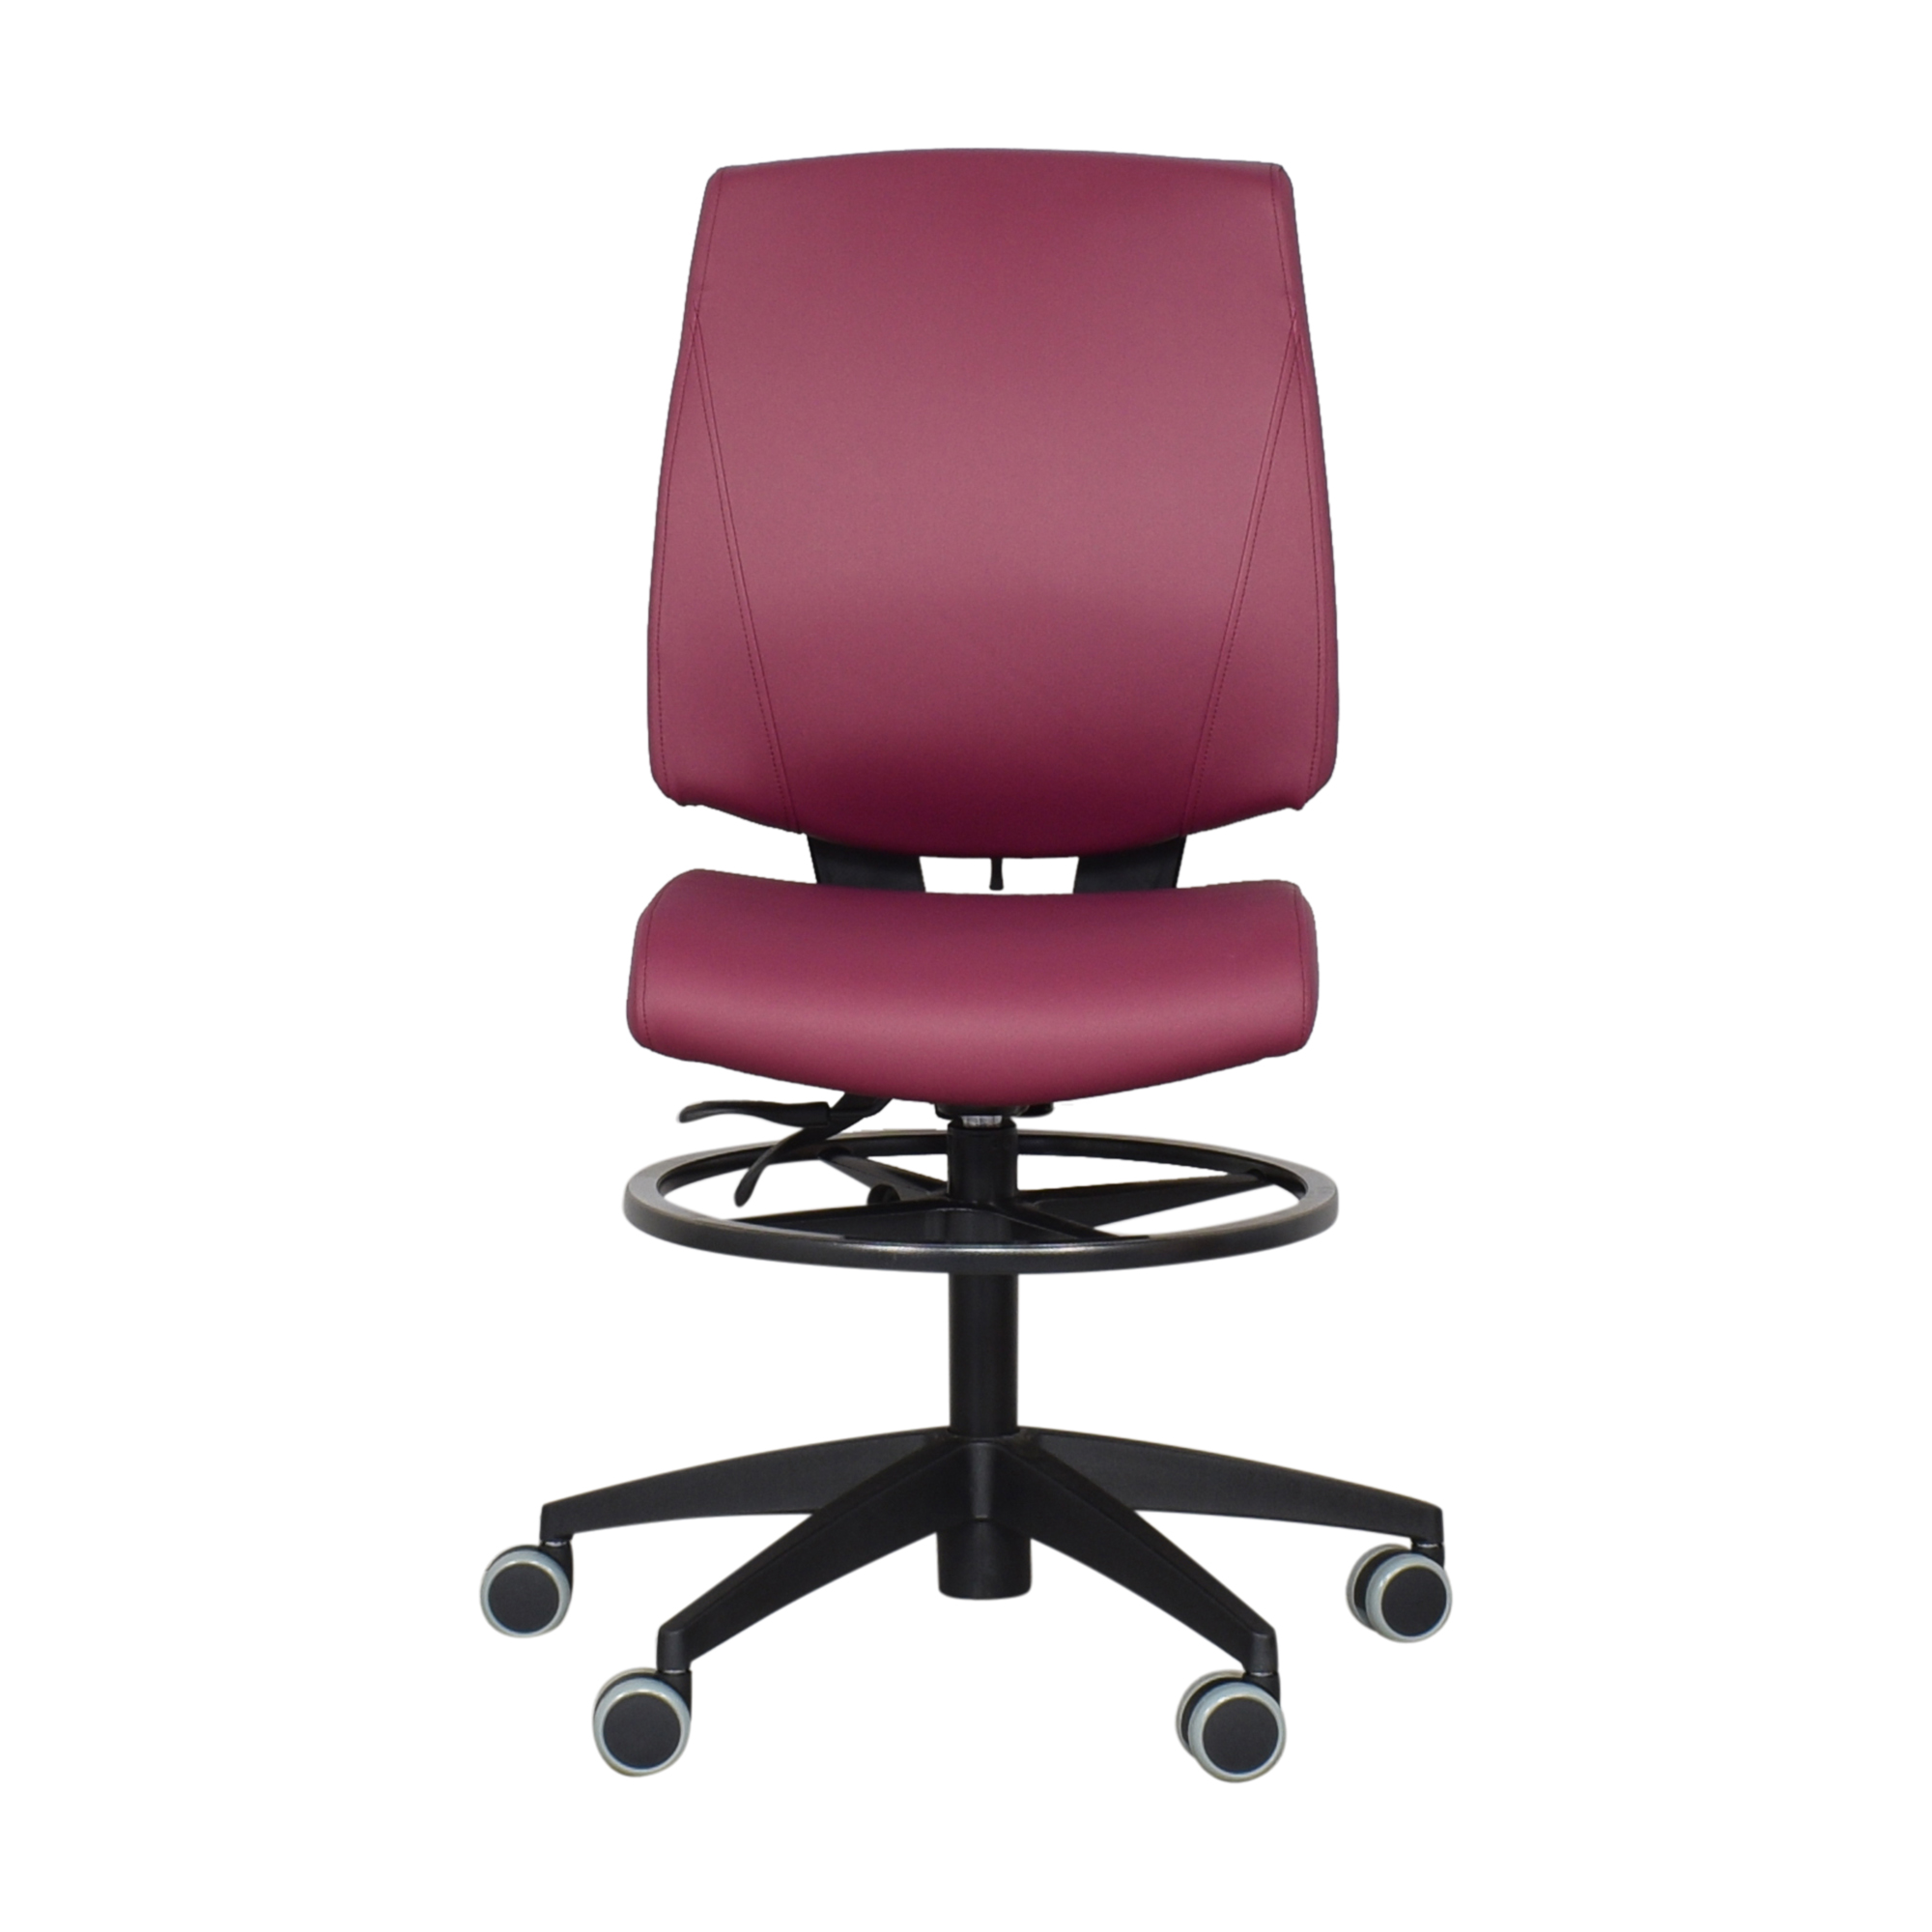 Global Furniture Group G1 Ergo Select Armless Medium Back Chair  / Home Office Chairs